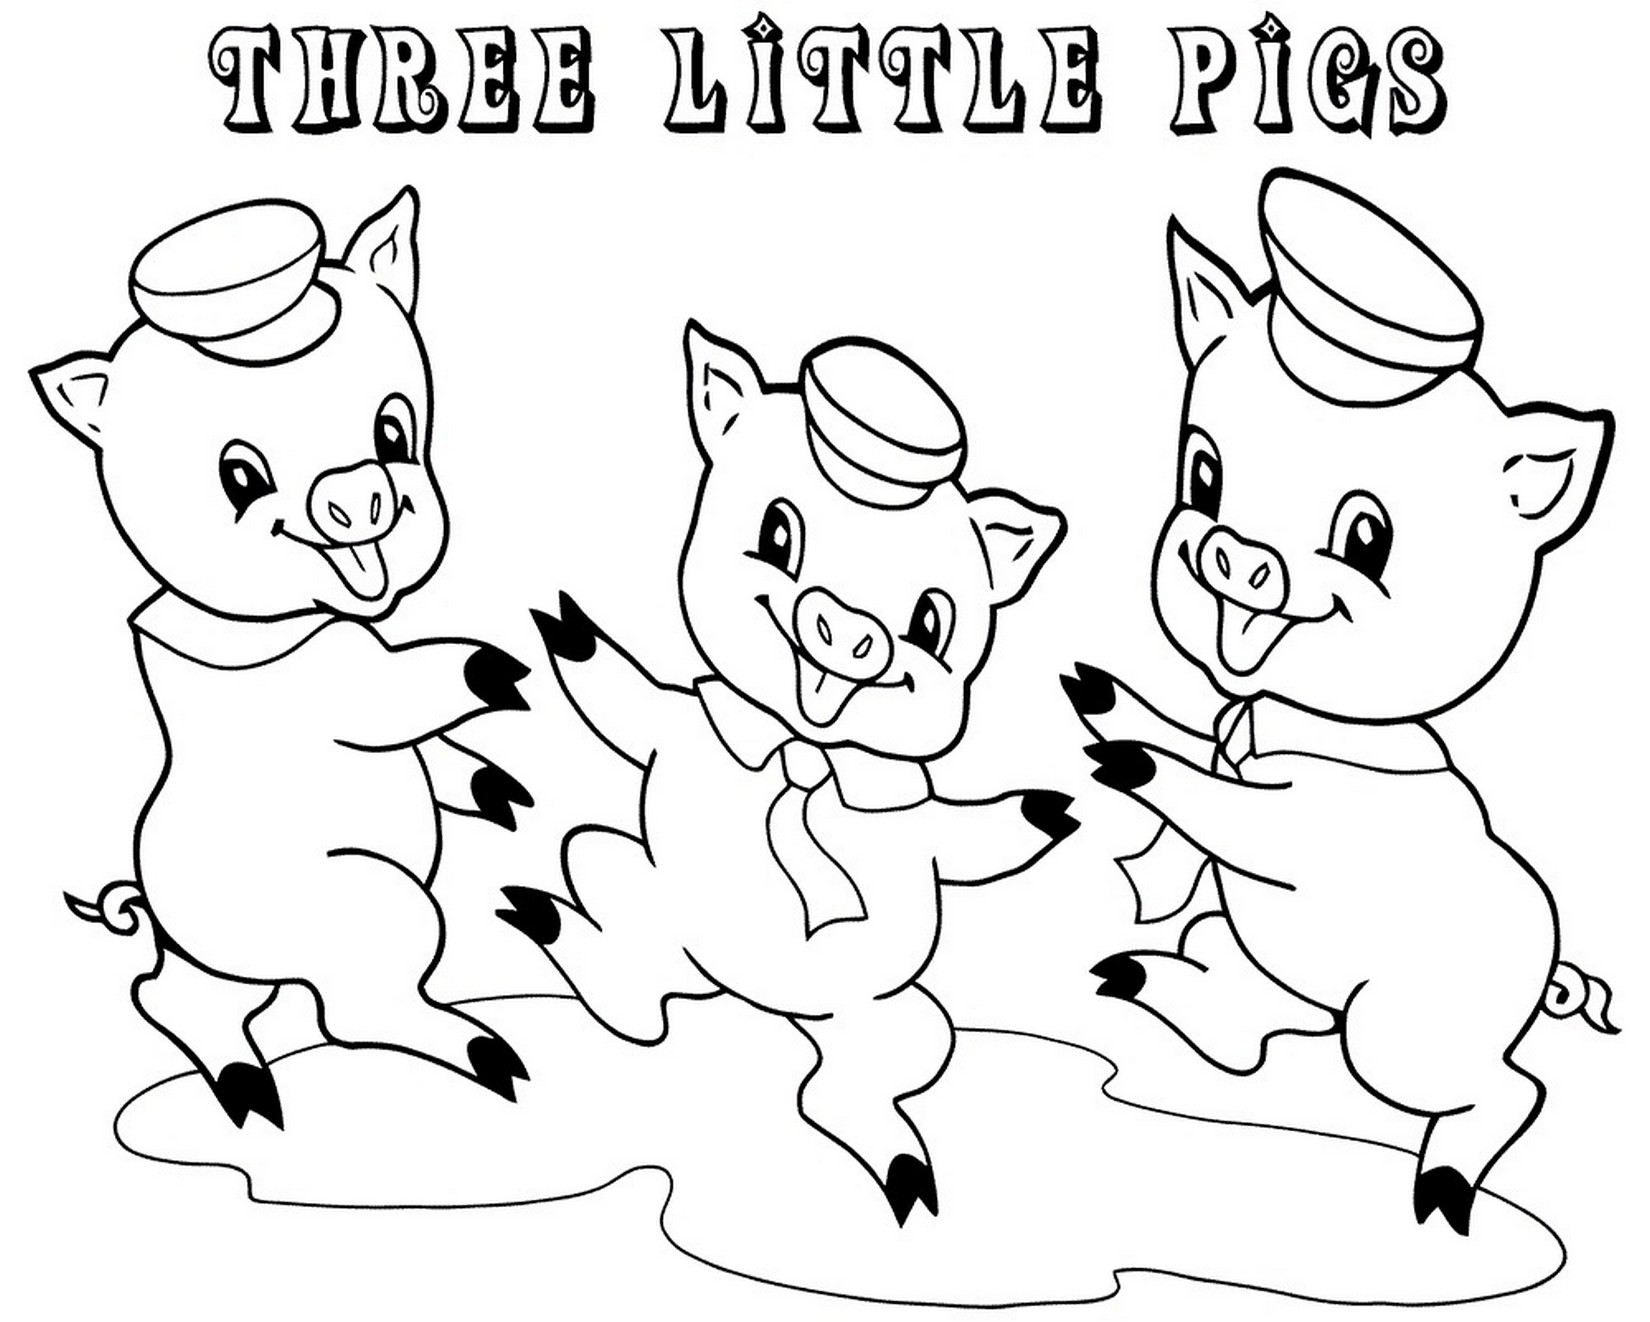 three little pigs coloring pages for preschool learning printable